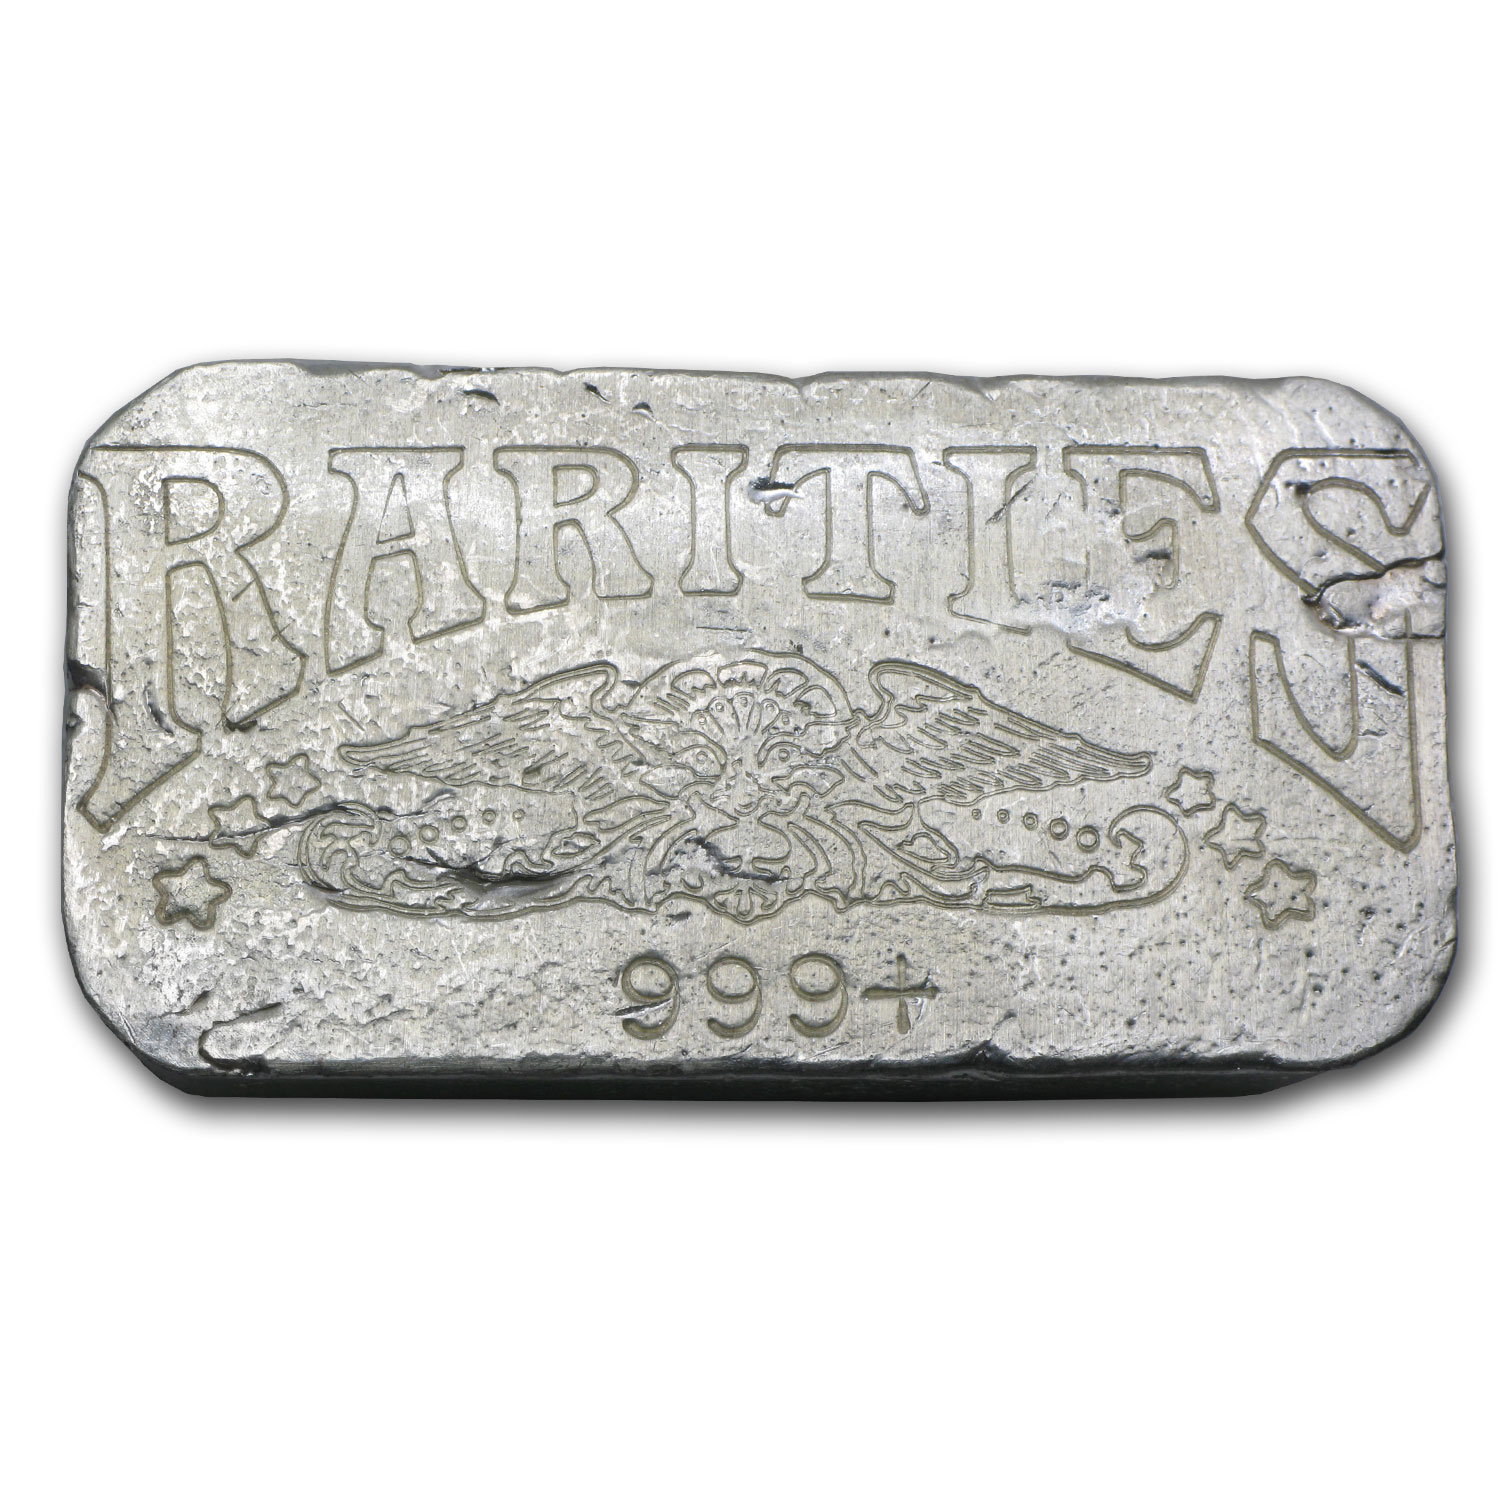 10 oz Silver Bar - Rarities Mint Cast Ingot